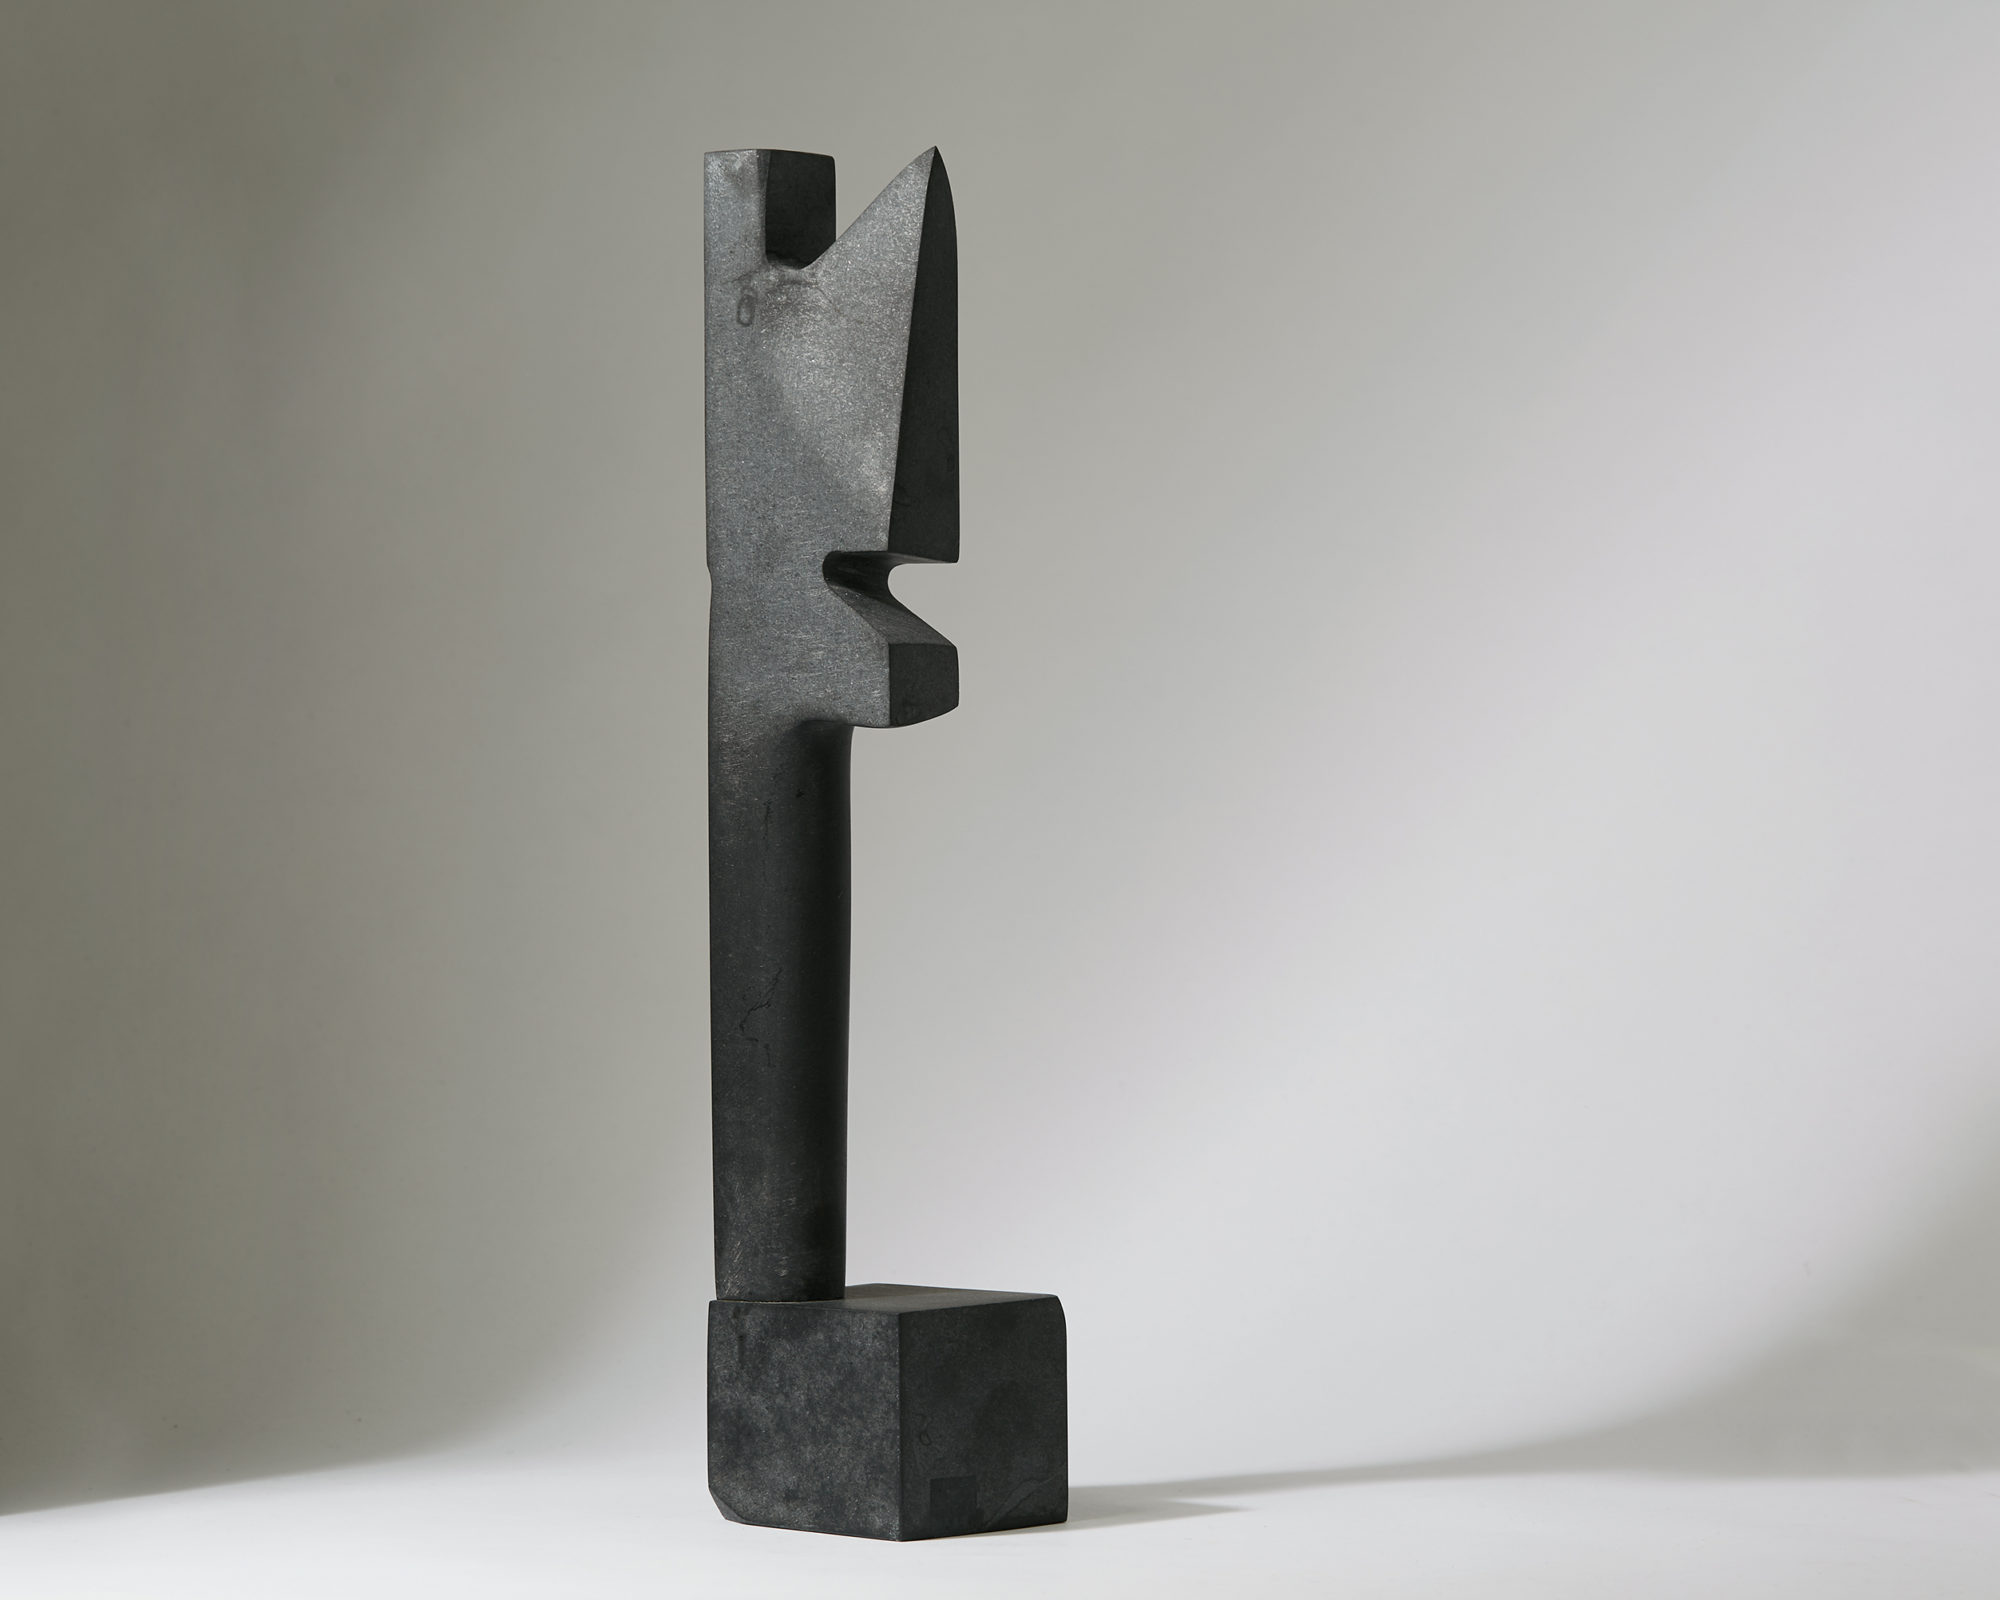 Sculpture by Björn Selder, Sweden. 1998. by Modernity on curated-crowd.com